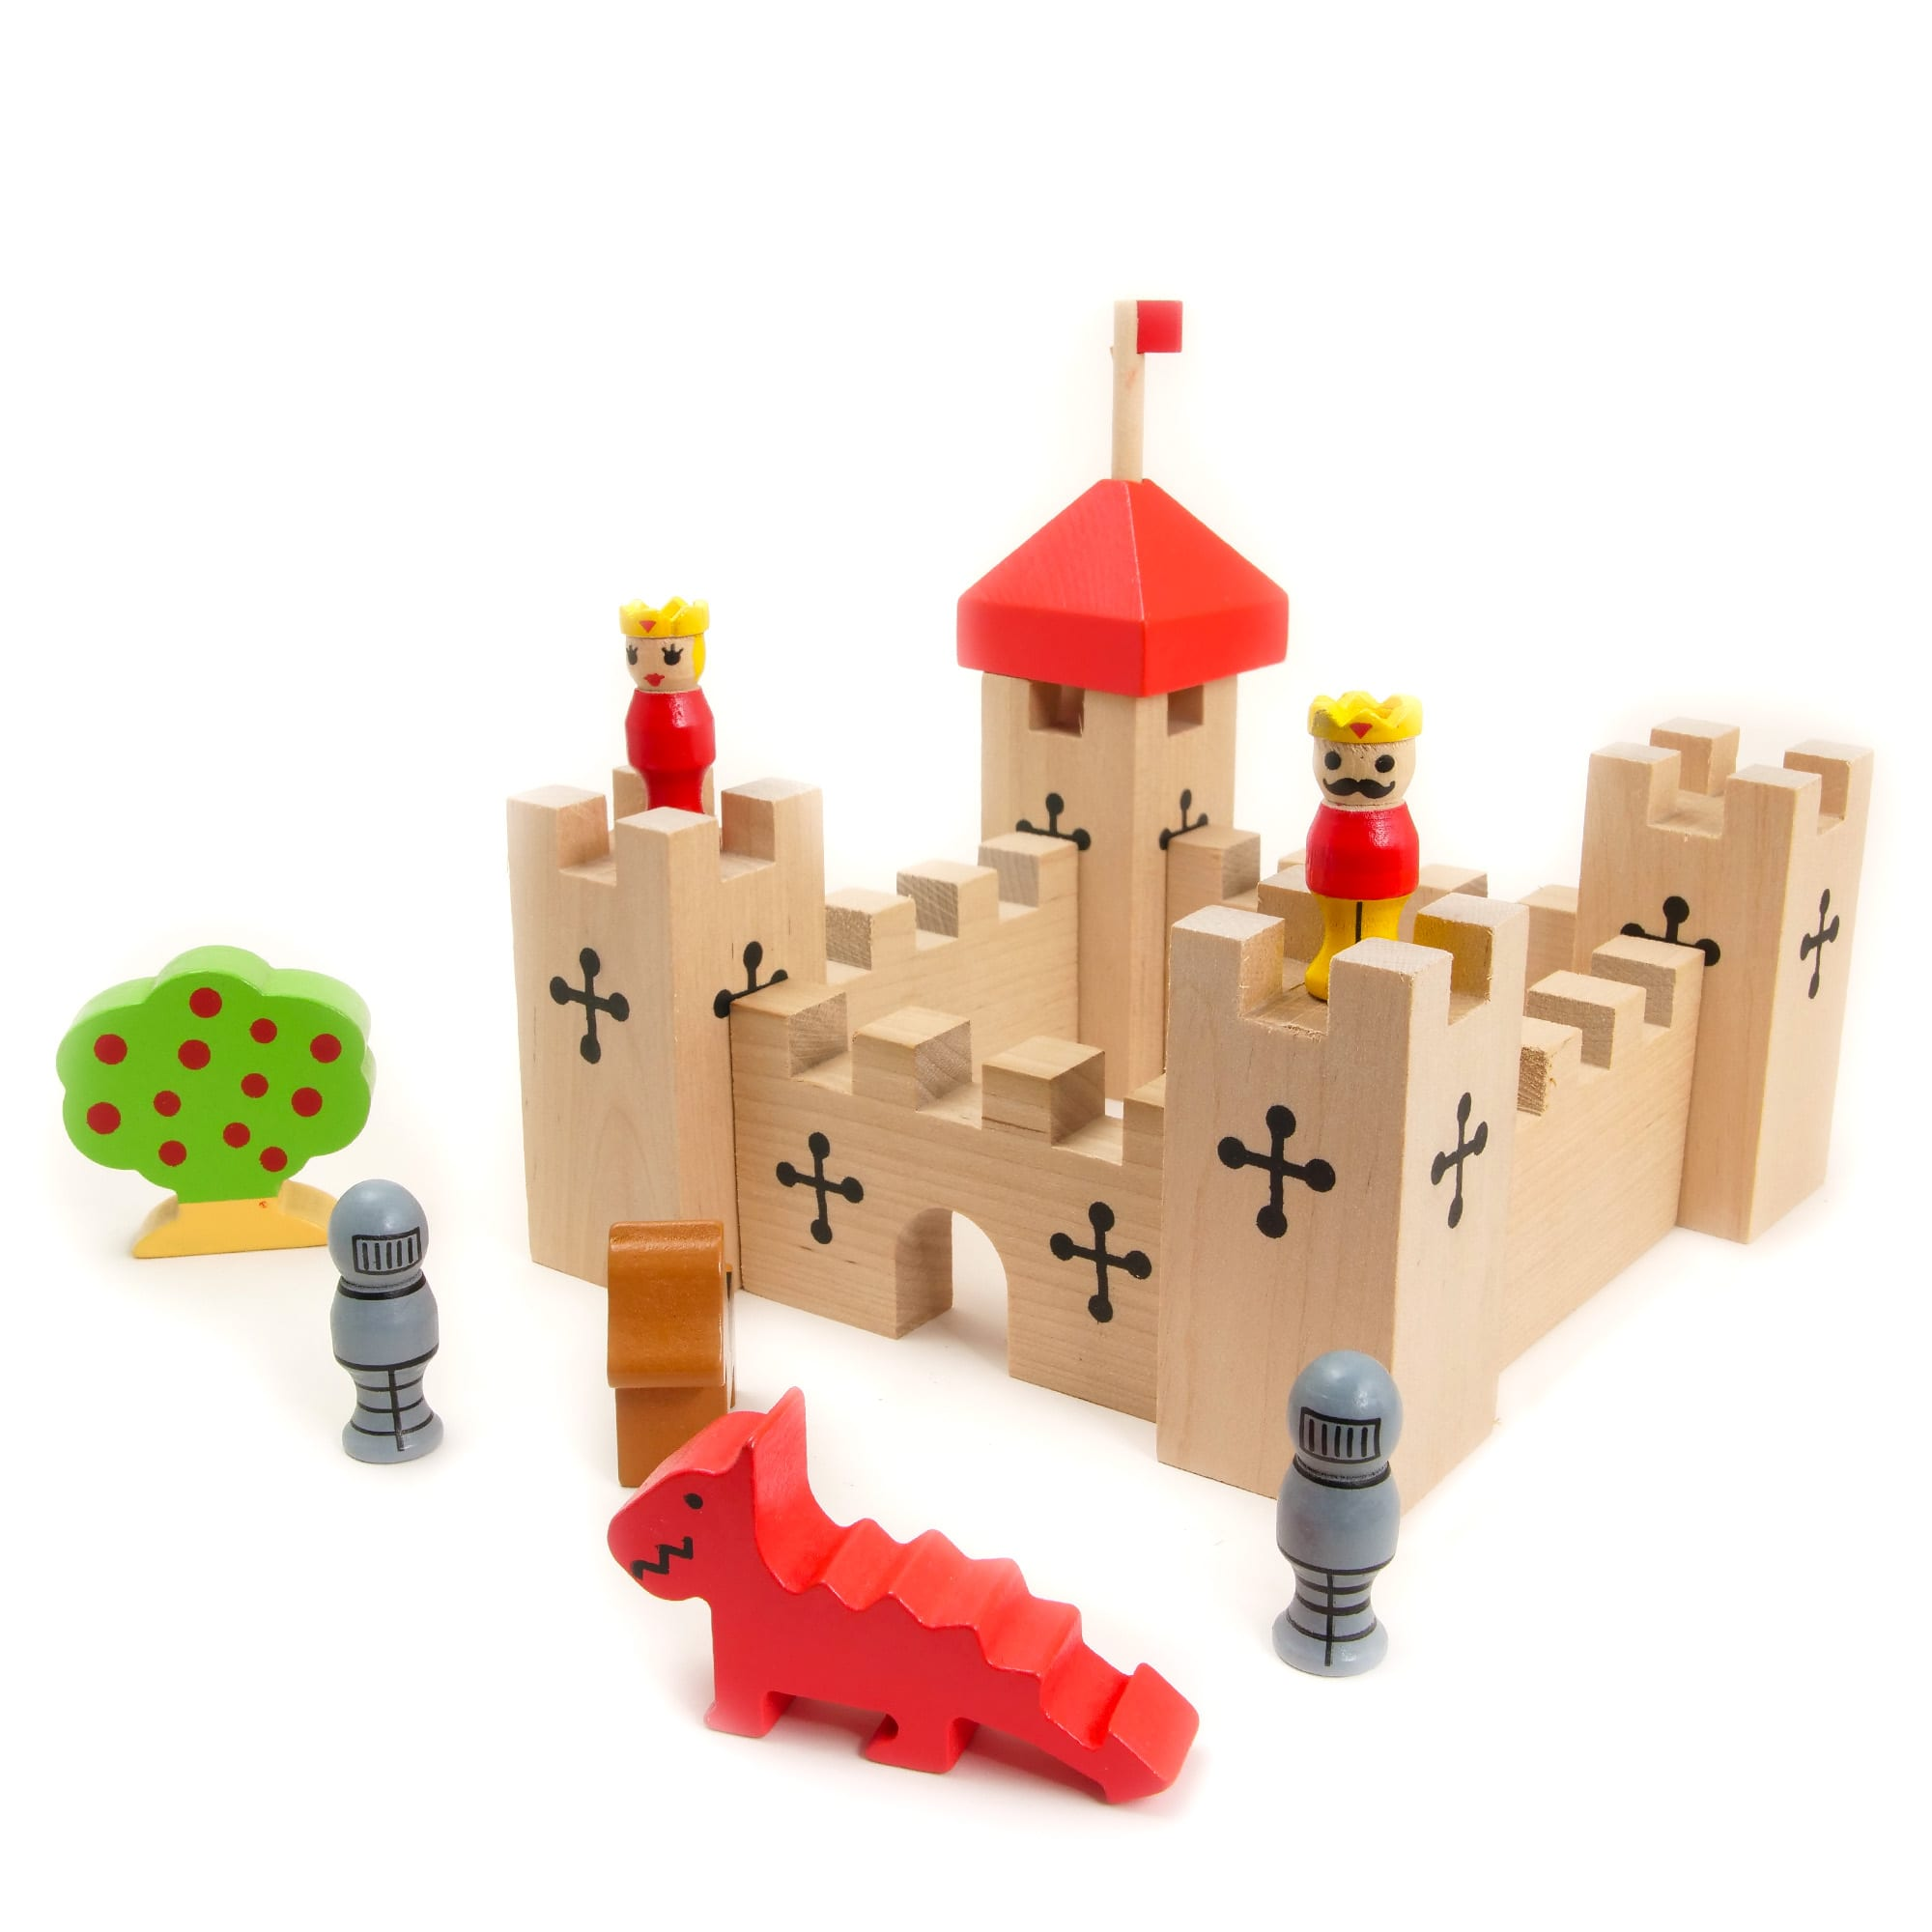 Wooden Castle Playset in a Bag, contents out of bag